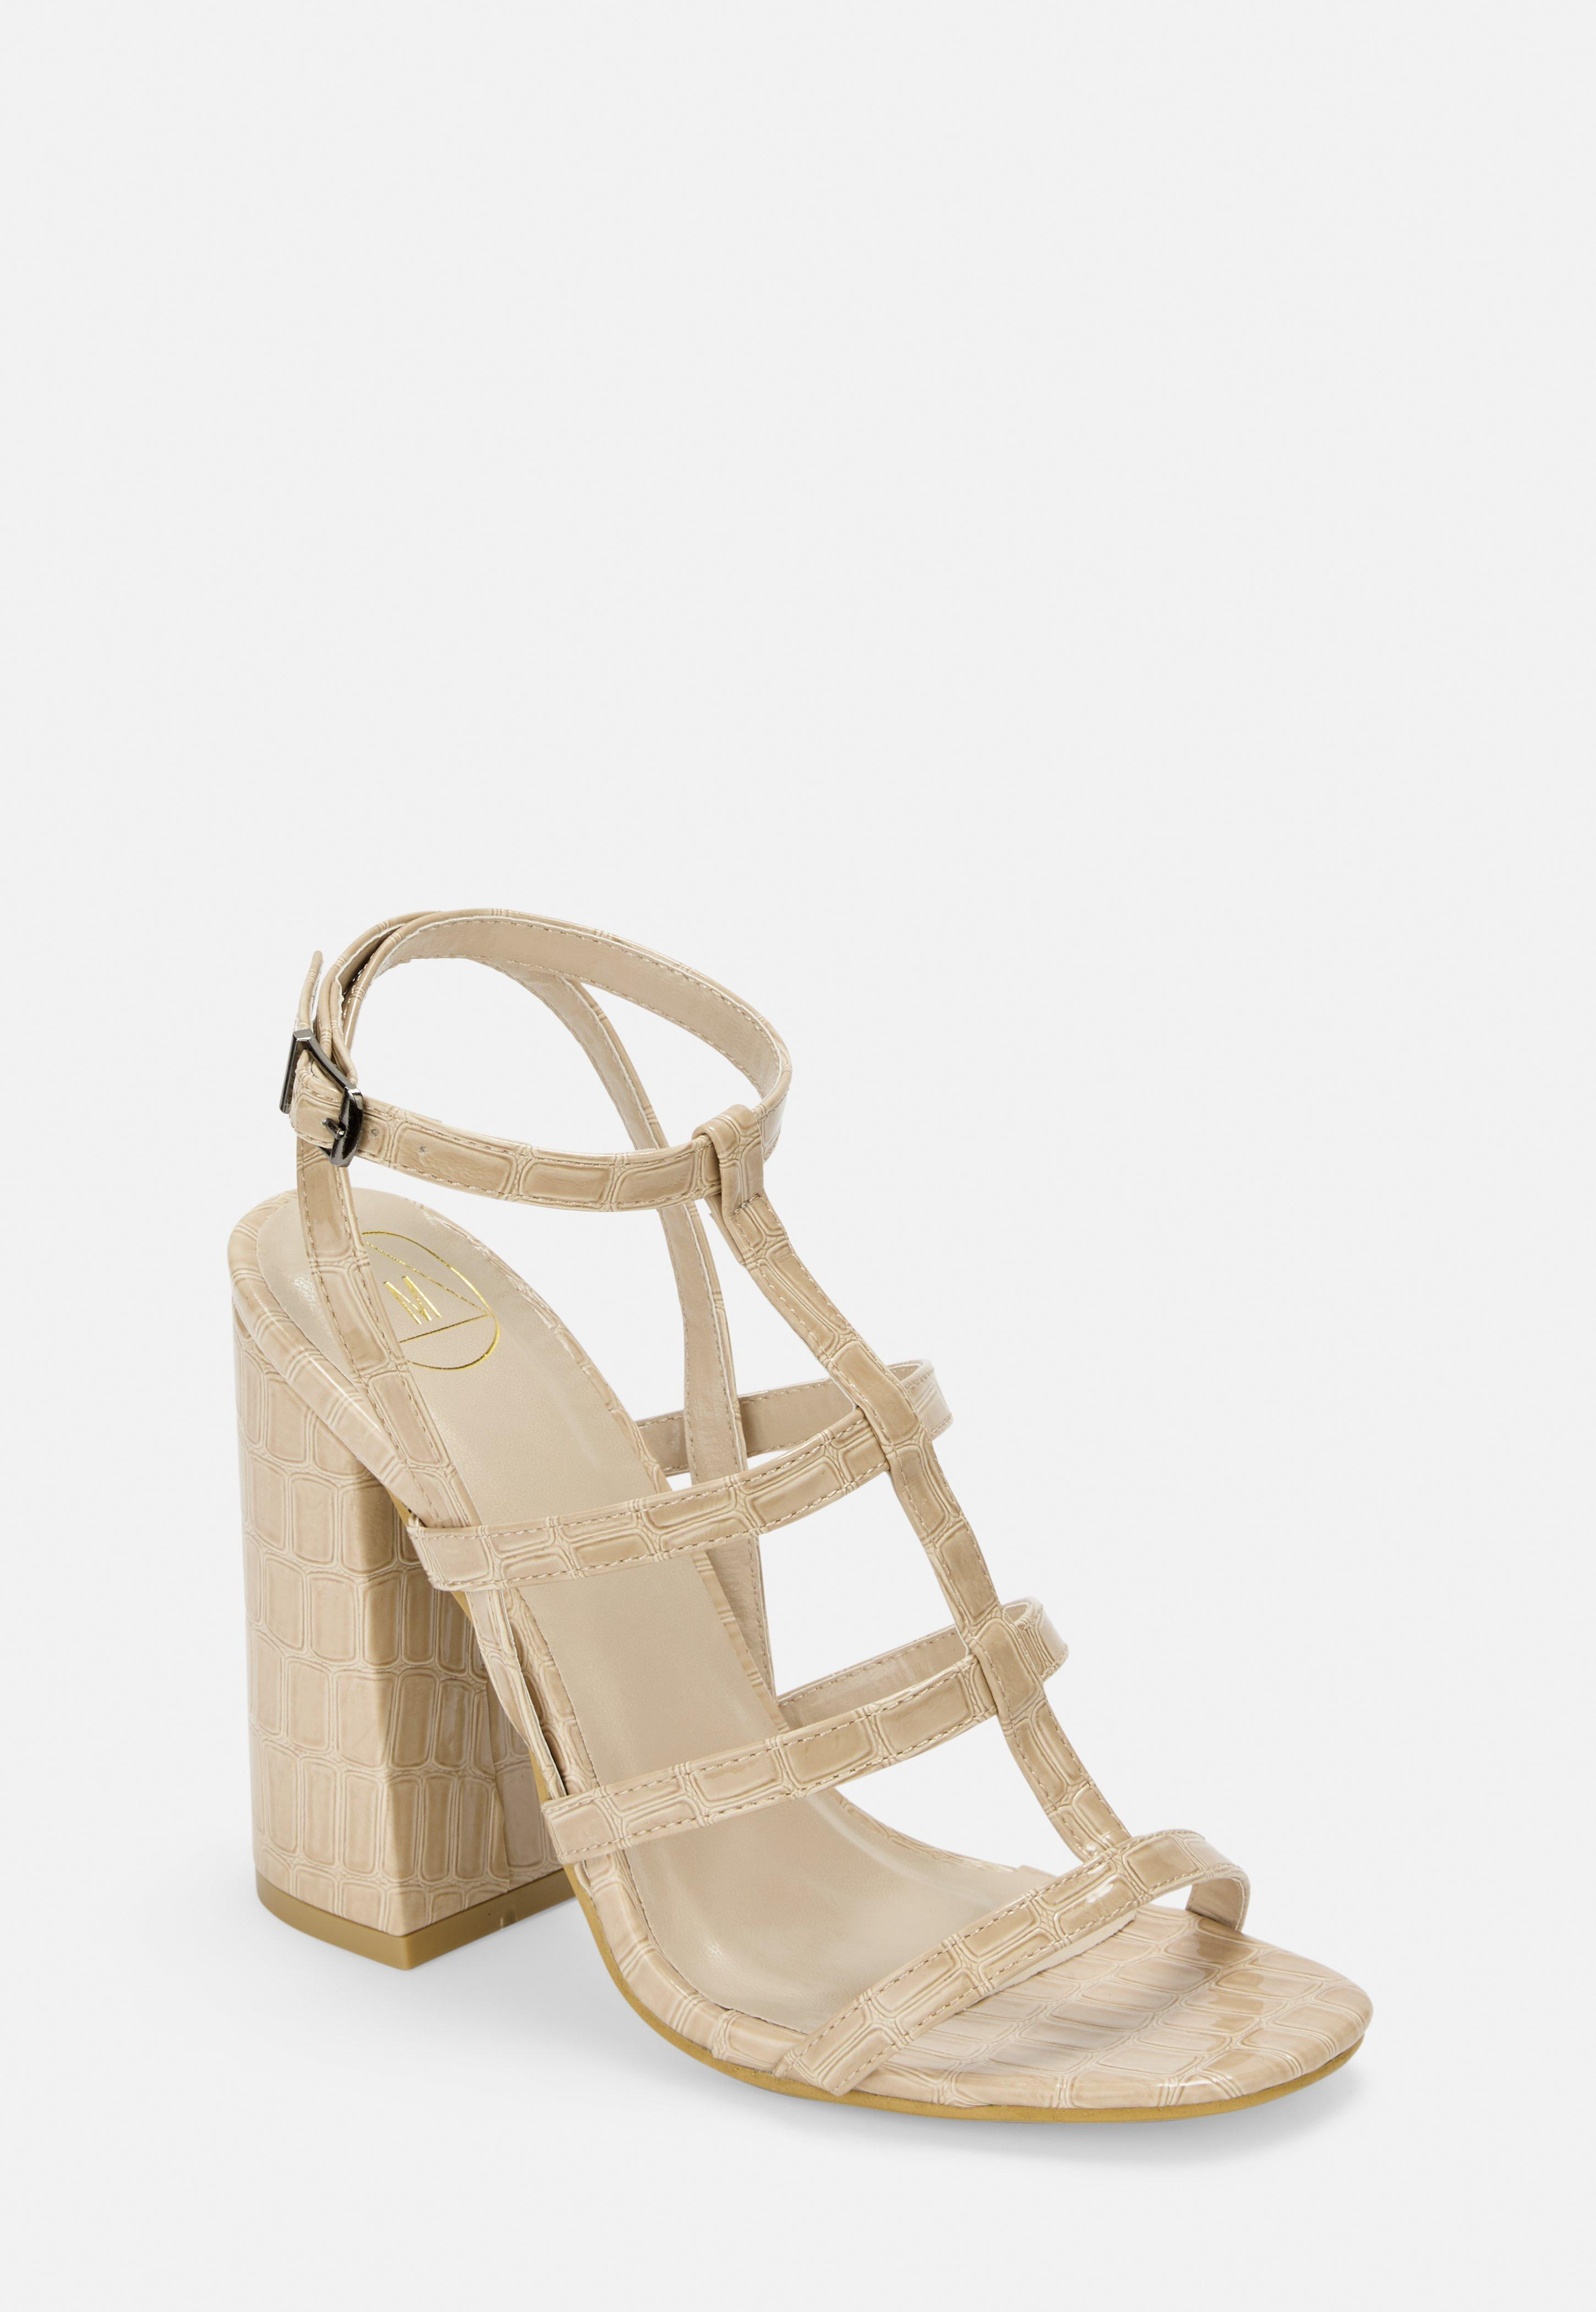 ab0421fb50 Heeled Sandals | Strappy & Barely There Heels - Missguided